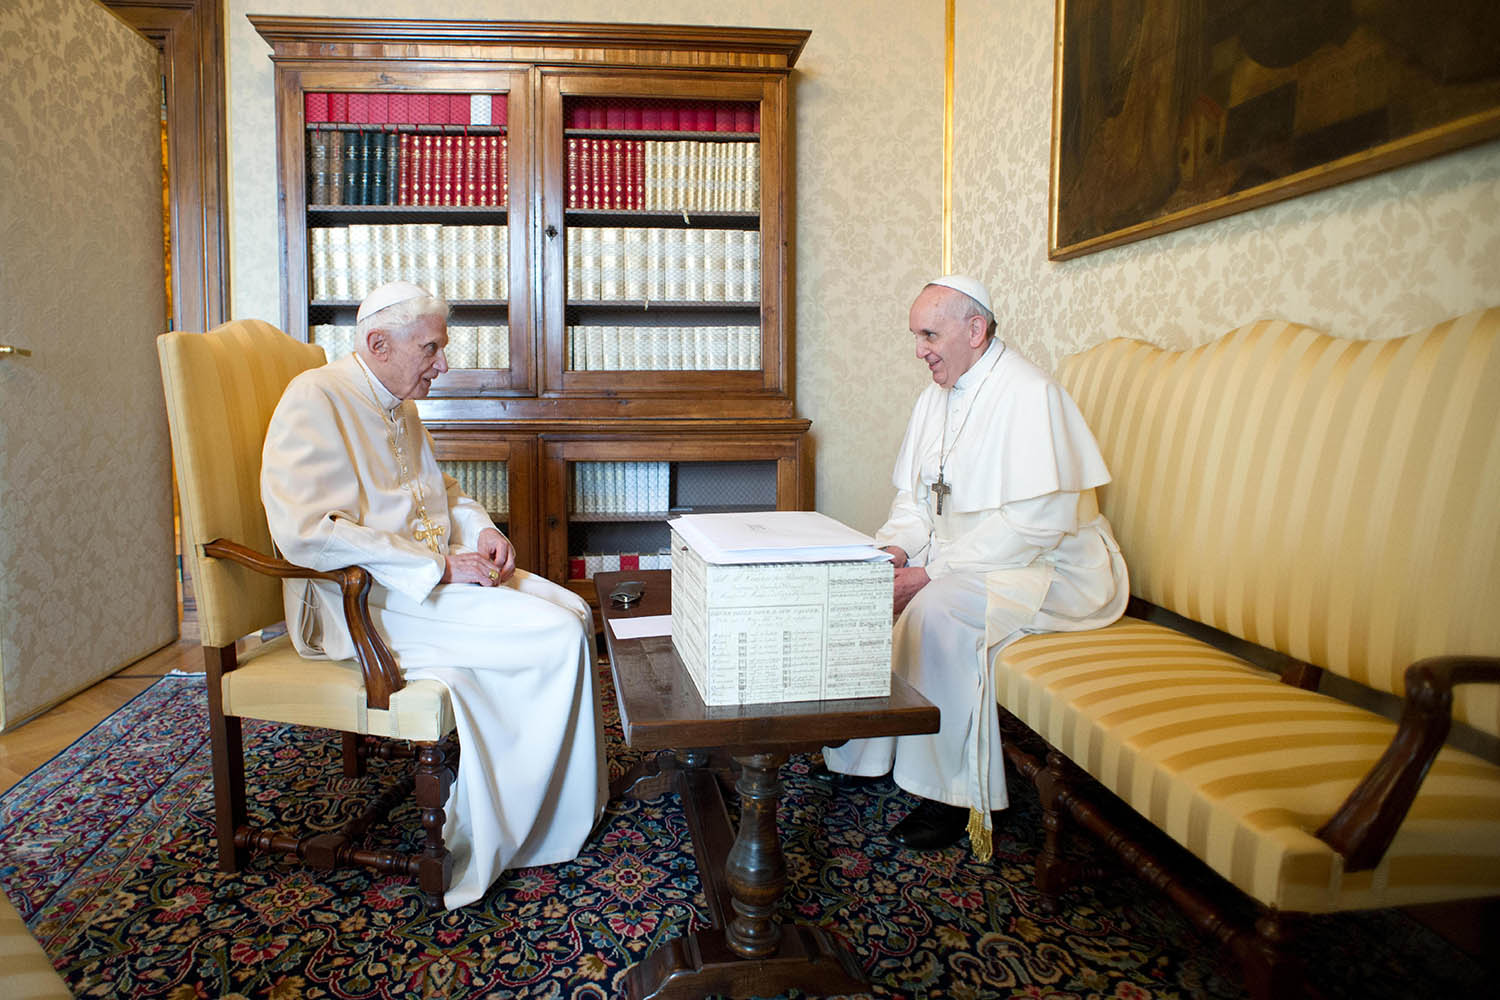 March 23, 2013. In this photo provided by the Vatican newspaper L'Osservatore Romano, Pope Francis, right, and Pope emeritus Benedict XVI meet in Castel Gandolfo.